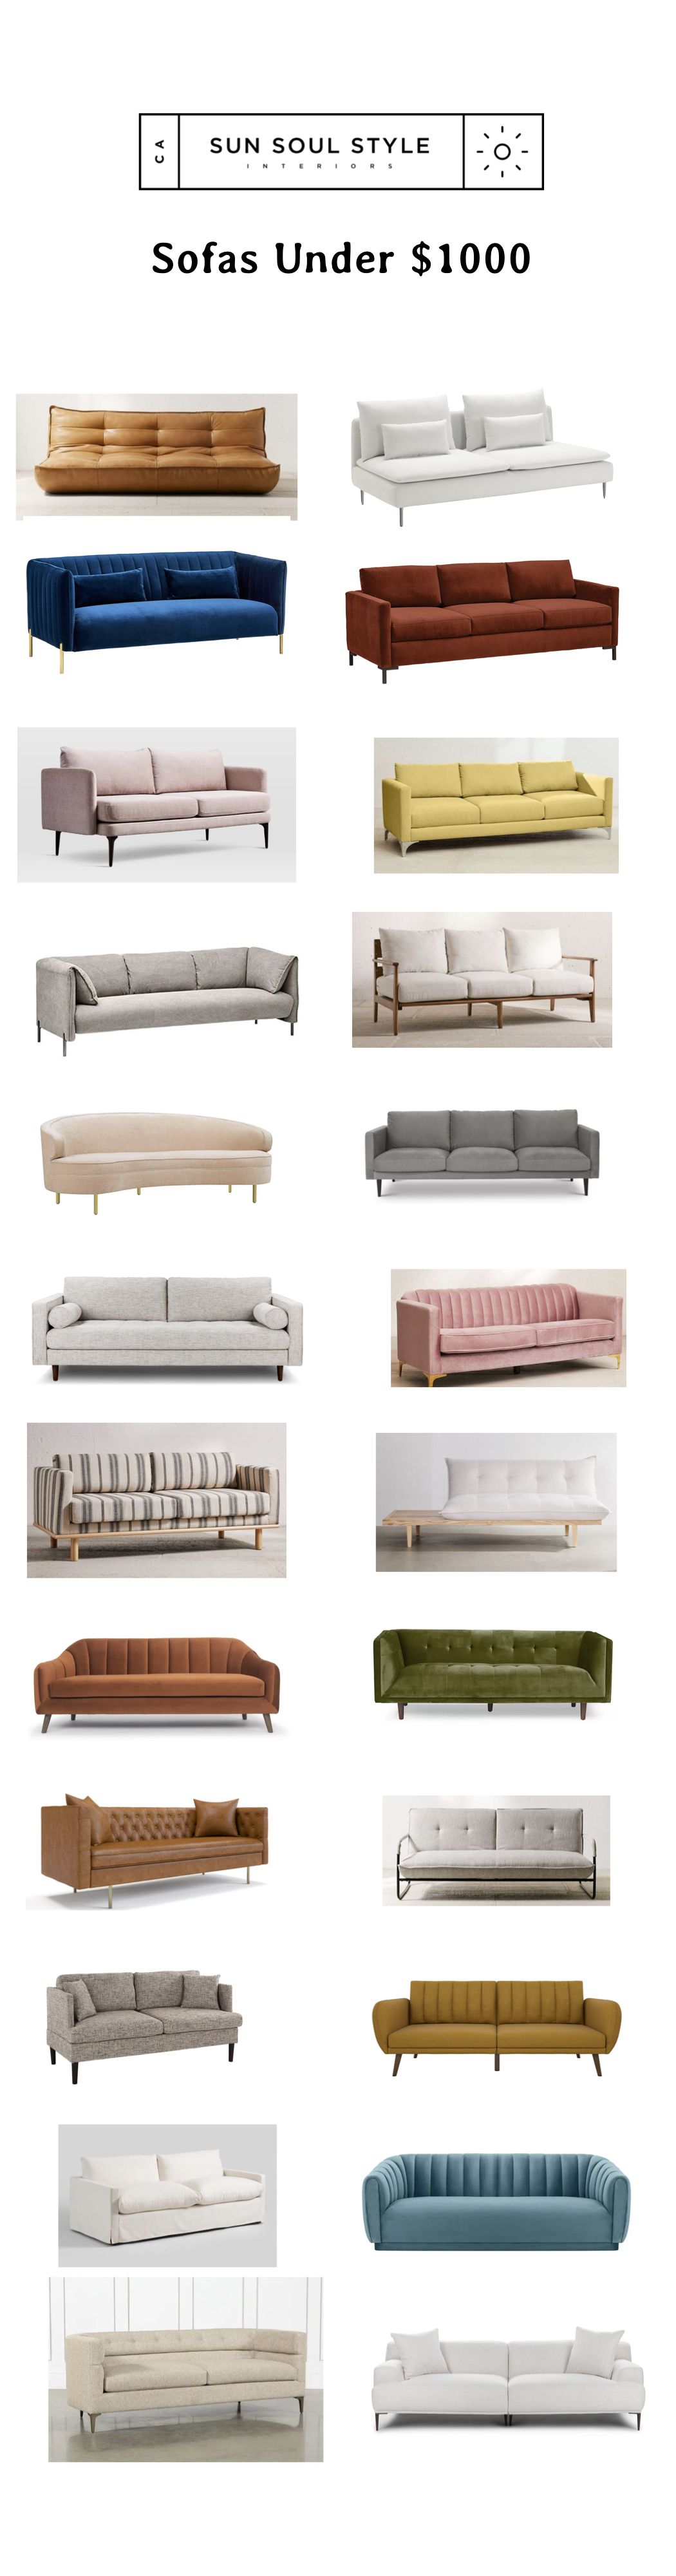 From top, left to right:  Greta Recycled XL Sofa via Urban Outftters  $879 //   SÖDERHAMN sofa via IKEA  $599 //   Rivet Frederick Velvet Sofa via Amazon $899  //  Rivet Edgewest Modern Sofa via Amazon $899  //  Auburn Sofa via West Elm $69 9 //  Chamberlain Sofa via Urban Outfitters $898  // R ivet Cyprus Sofa via Amazon  $899 //  Peyton Sofa via Urban Outfitters $898  //  Velvet Upholstered Curved Sofa via Amazon $937.85  //  Lacey Sofa via All Modern  $799 //  Sven Sofa $999 via Article  //  Marcella Velvet Sofa via Urban Outfitters  $799 //  Quinn Striped Sofa Via Urban Outfitters  $799 //  Reid Side Table Convertible Sofa via Urban Outfitters  $749 //  Velvet Sofa via AllModern  $773 //   Ferrao Chesterfield Sofa via AllModern  $639.99 //  Middleborough Sofa via AllModern  $739.99 //  H ayes Sofa $599 via Urban Outfitters  //   Modern Upholstered Loveseat Couch via Amazon  $249.99 //   Brittany Futon via Amazon  $279.99 //  I vory Feather Filled Brynn Sofa via World Market   $899.99 //  Alexus Sofa via All Modern  $969.99 //   Matteo Estate Sofa via Living Spaces  $895 //  Abisko Frost White Sofa  via Article $899